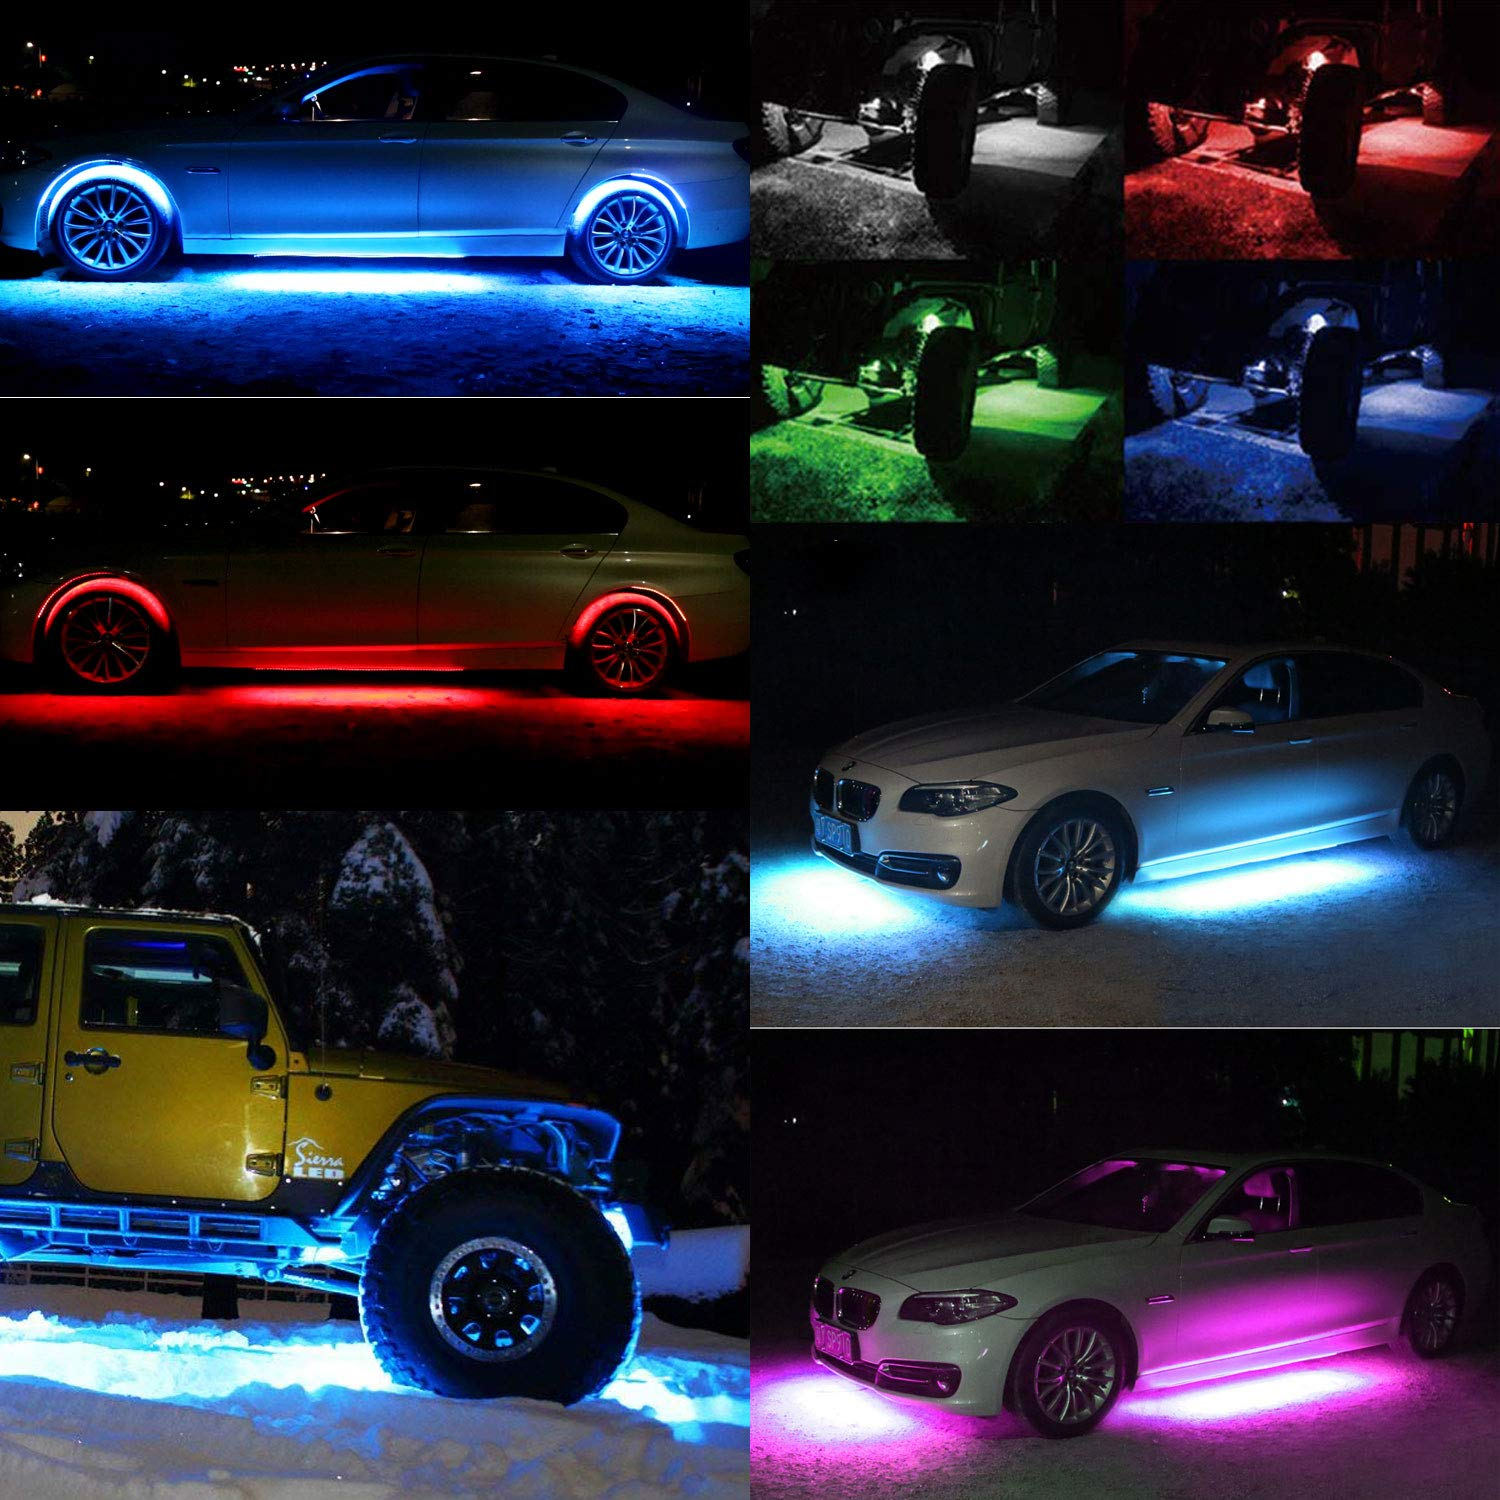 LED Rock Light Kits with 6 pods Lights for Off Road Truck Car ATV SUV Red